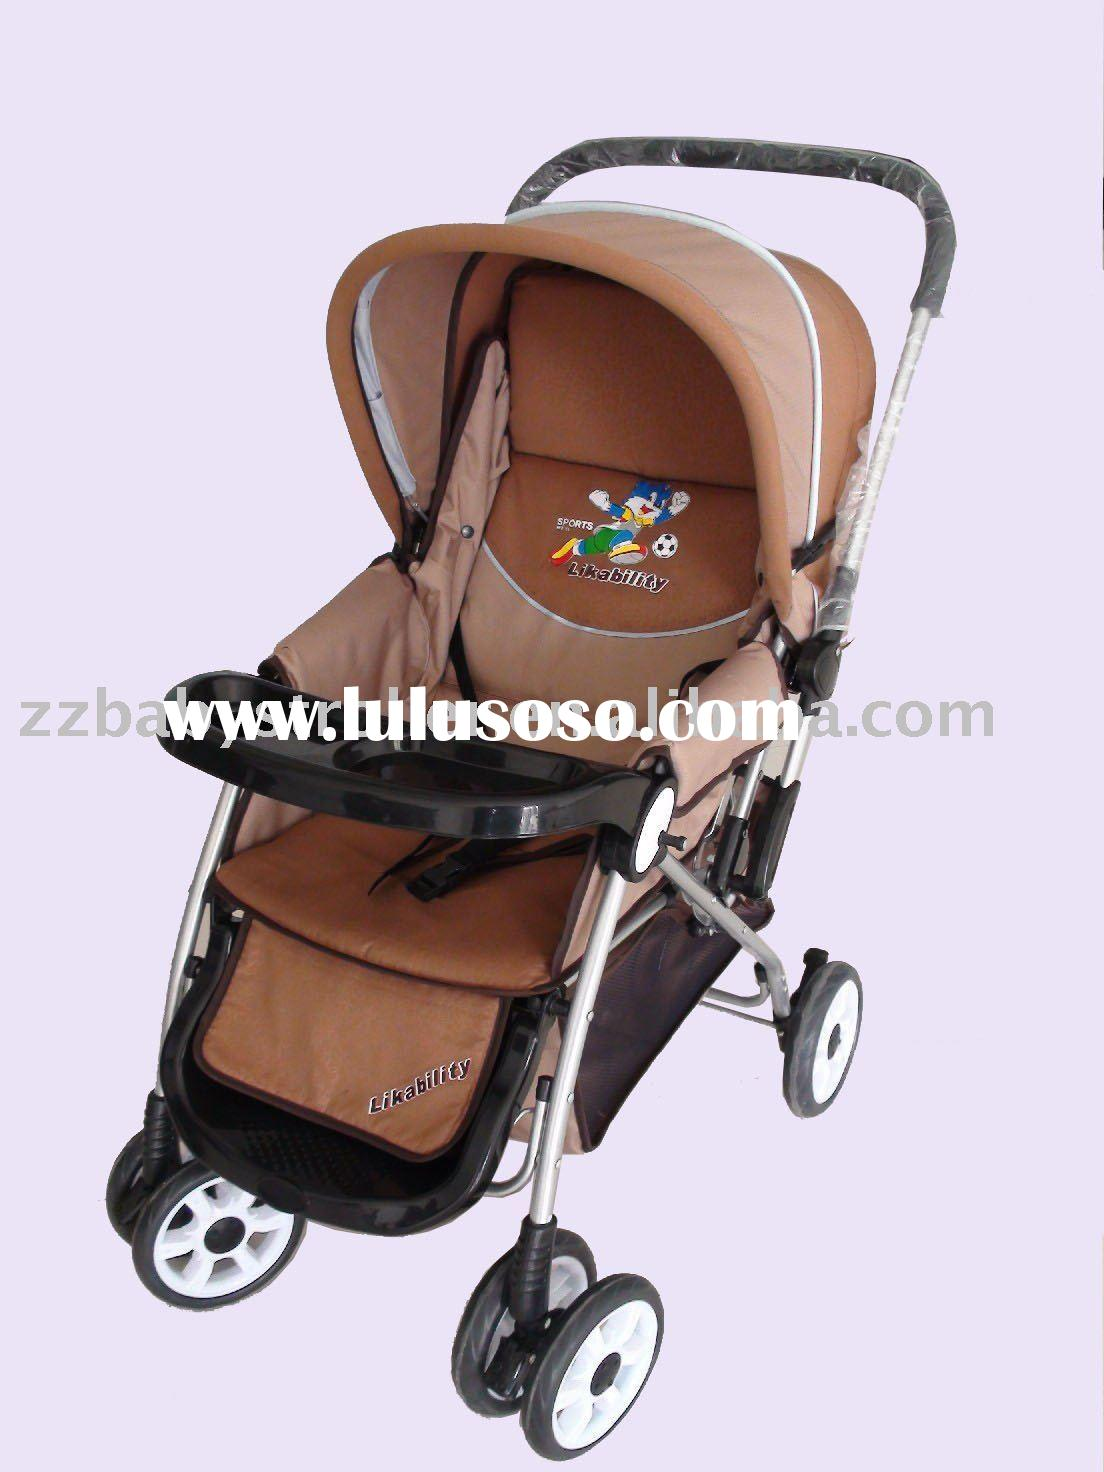 doll stroller with reversible handle